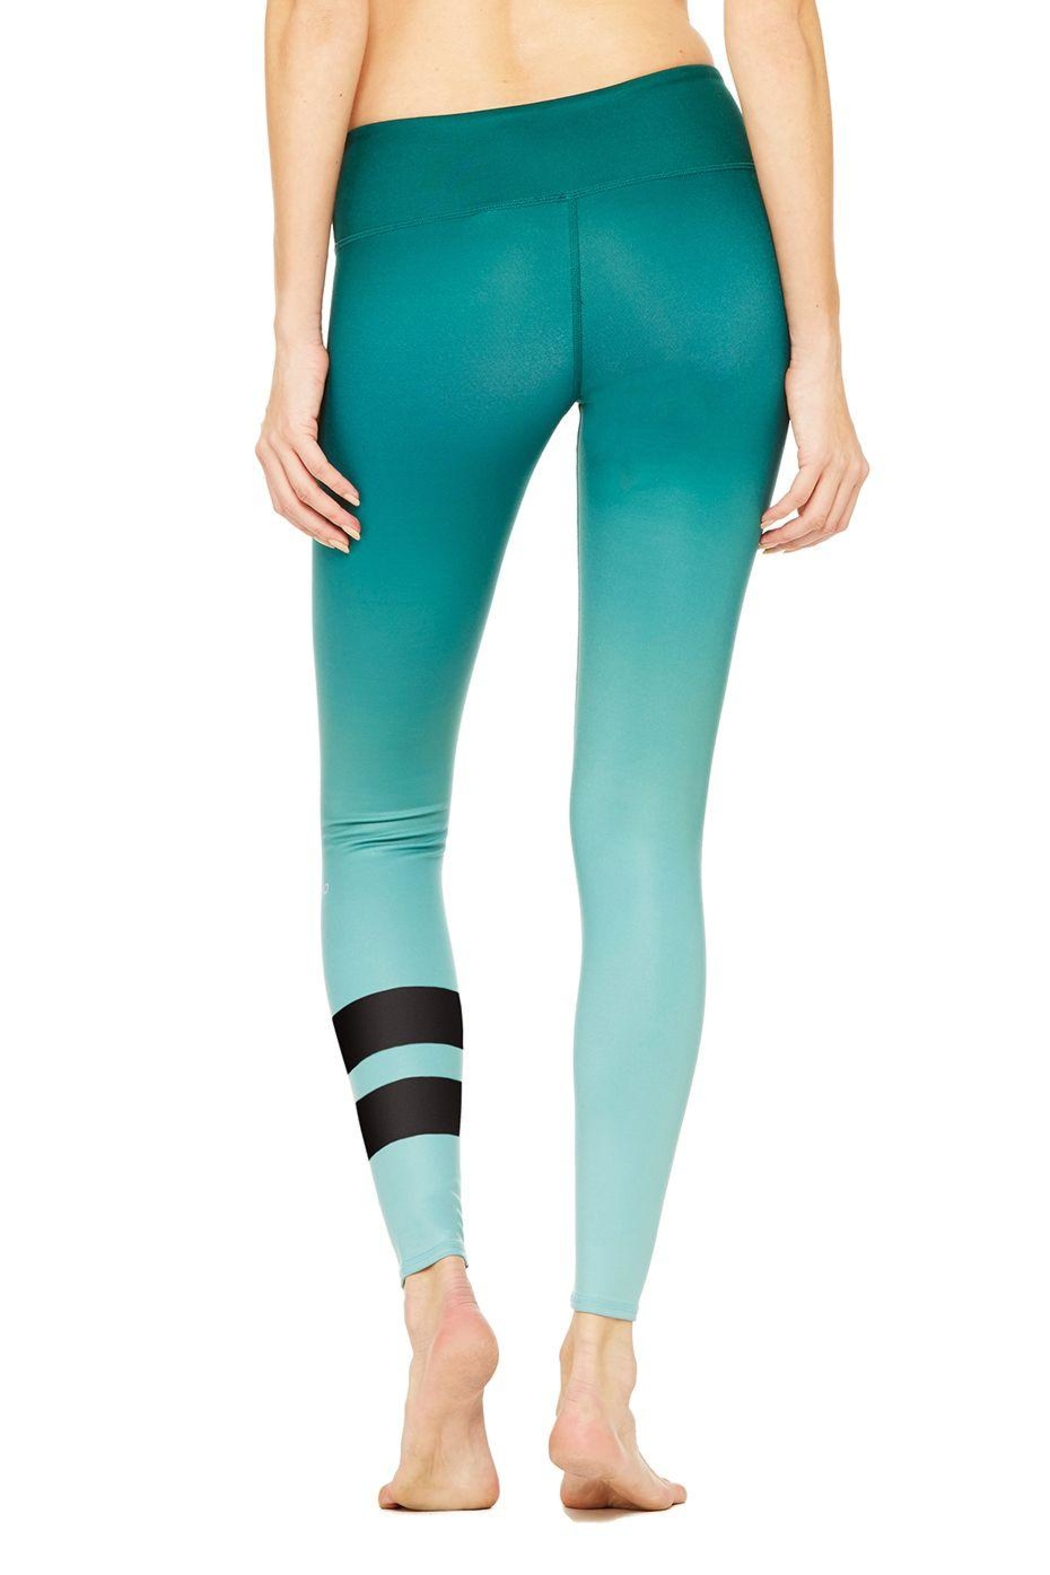 cbc47ae4b3 ALO Yoga Emerald Green Legging from New York City by The StreetLite ...